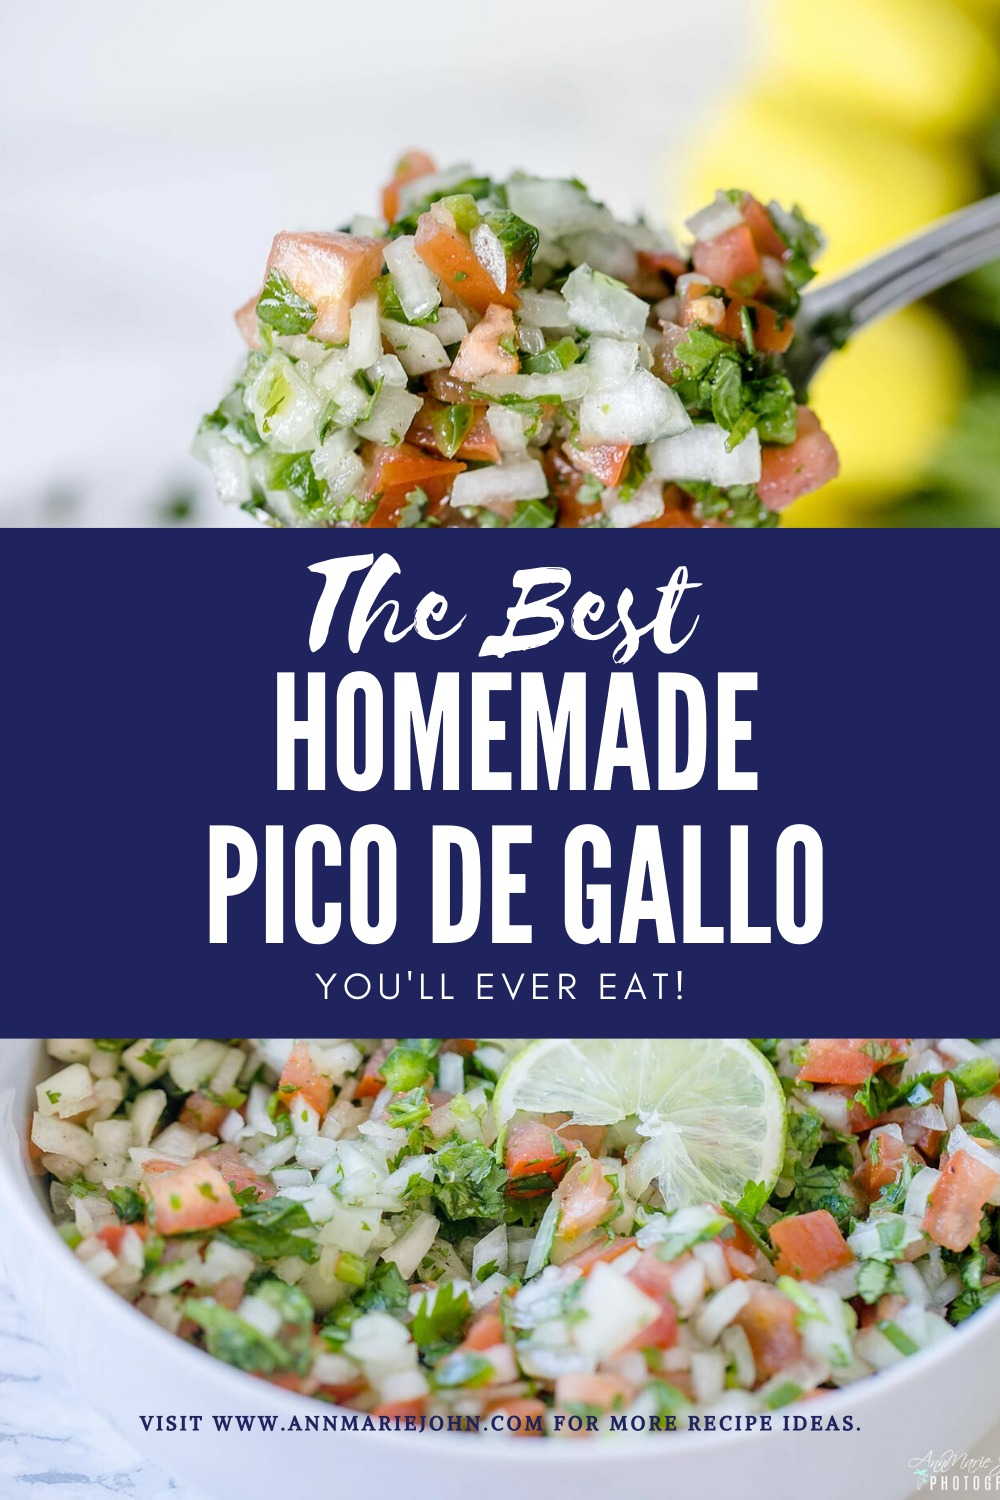 Homemade Pico de Gallo Pinterest Image